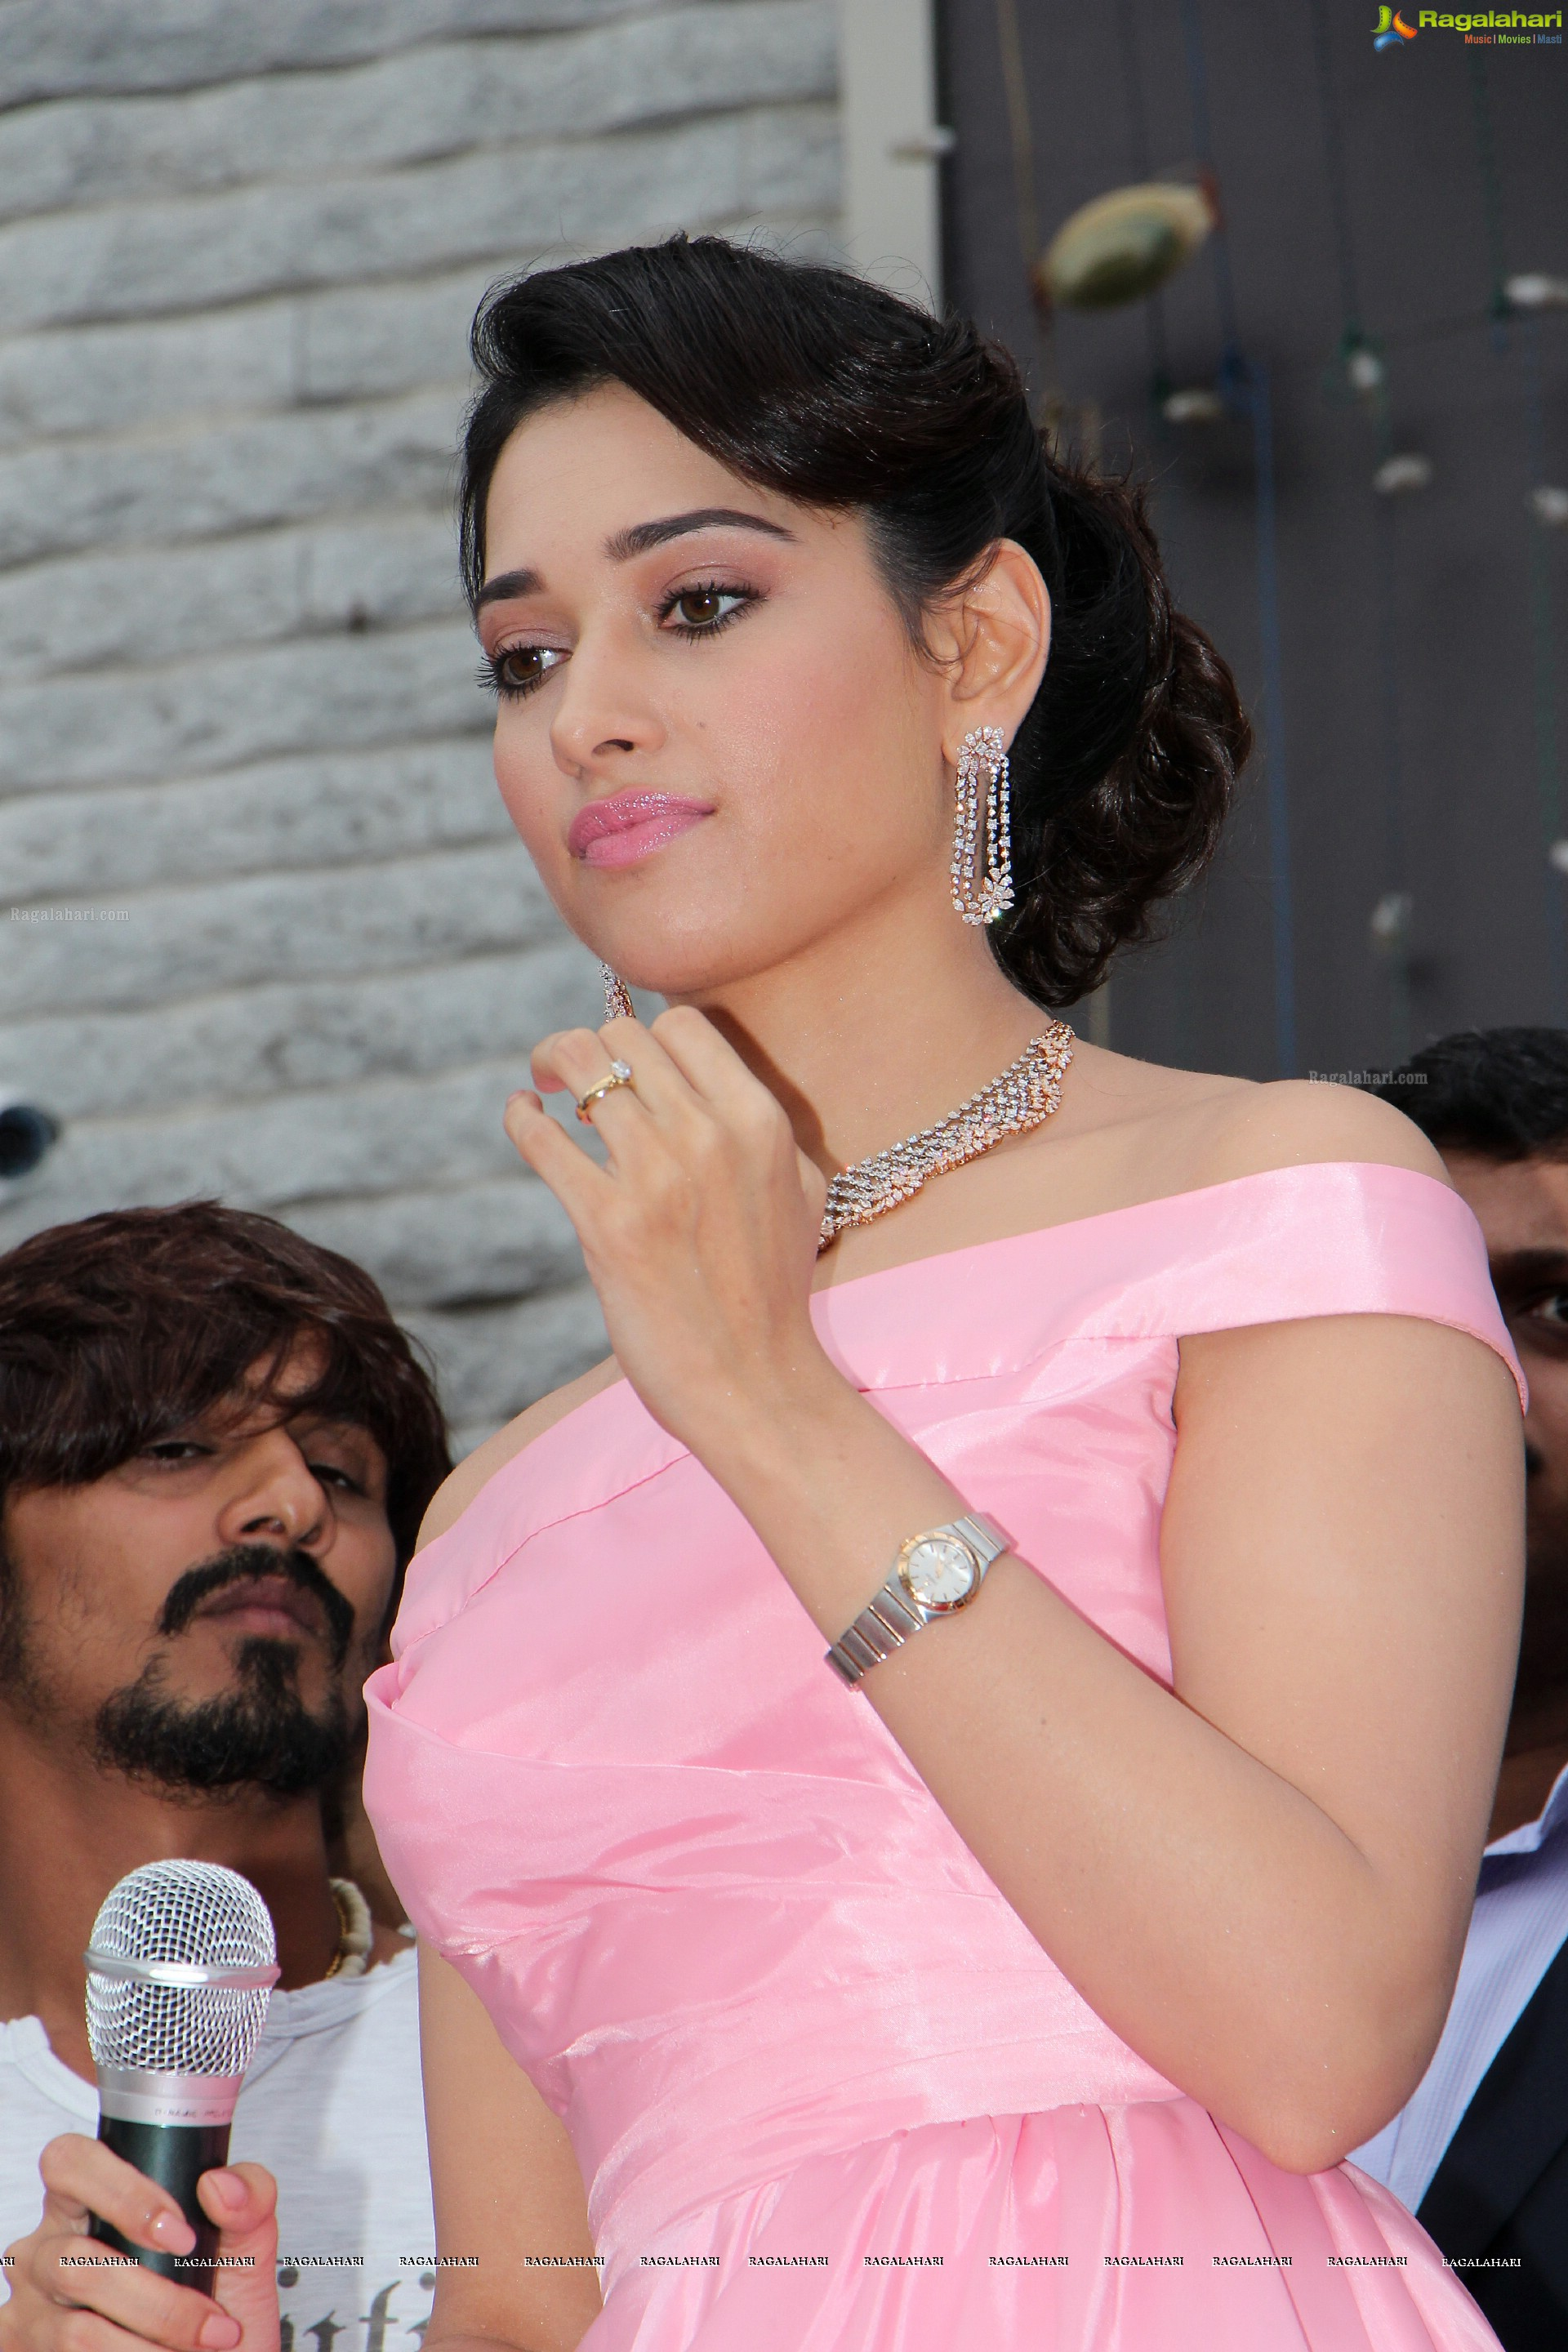 the face bahubali along seen new whats and big be next in tamanaah screen for brand leading prabhu as on soon tamannaah roped deva bhatia gold diamond s snapped lady commercial happenin malabar with will